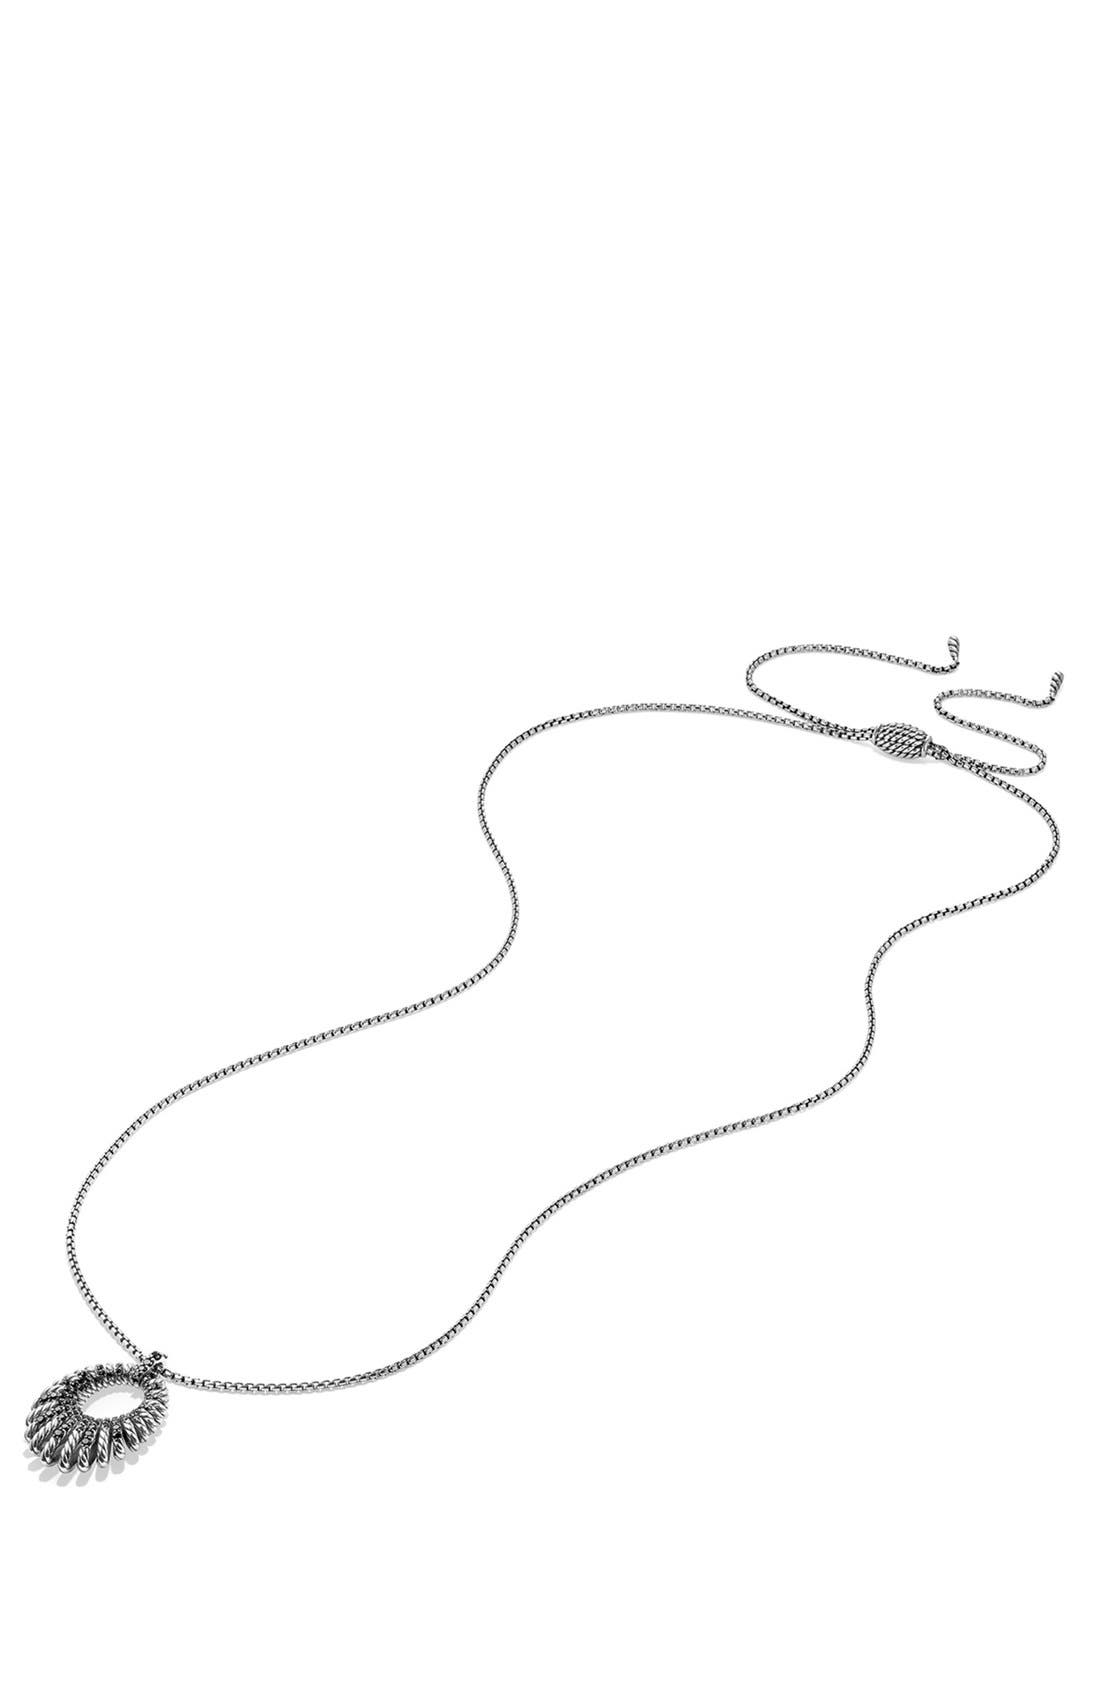 'Tempo' Necklace with Black Spinel,                             Alternate thumbnail 2, color,                             005